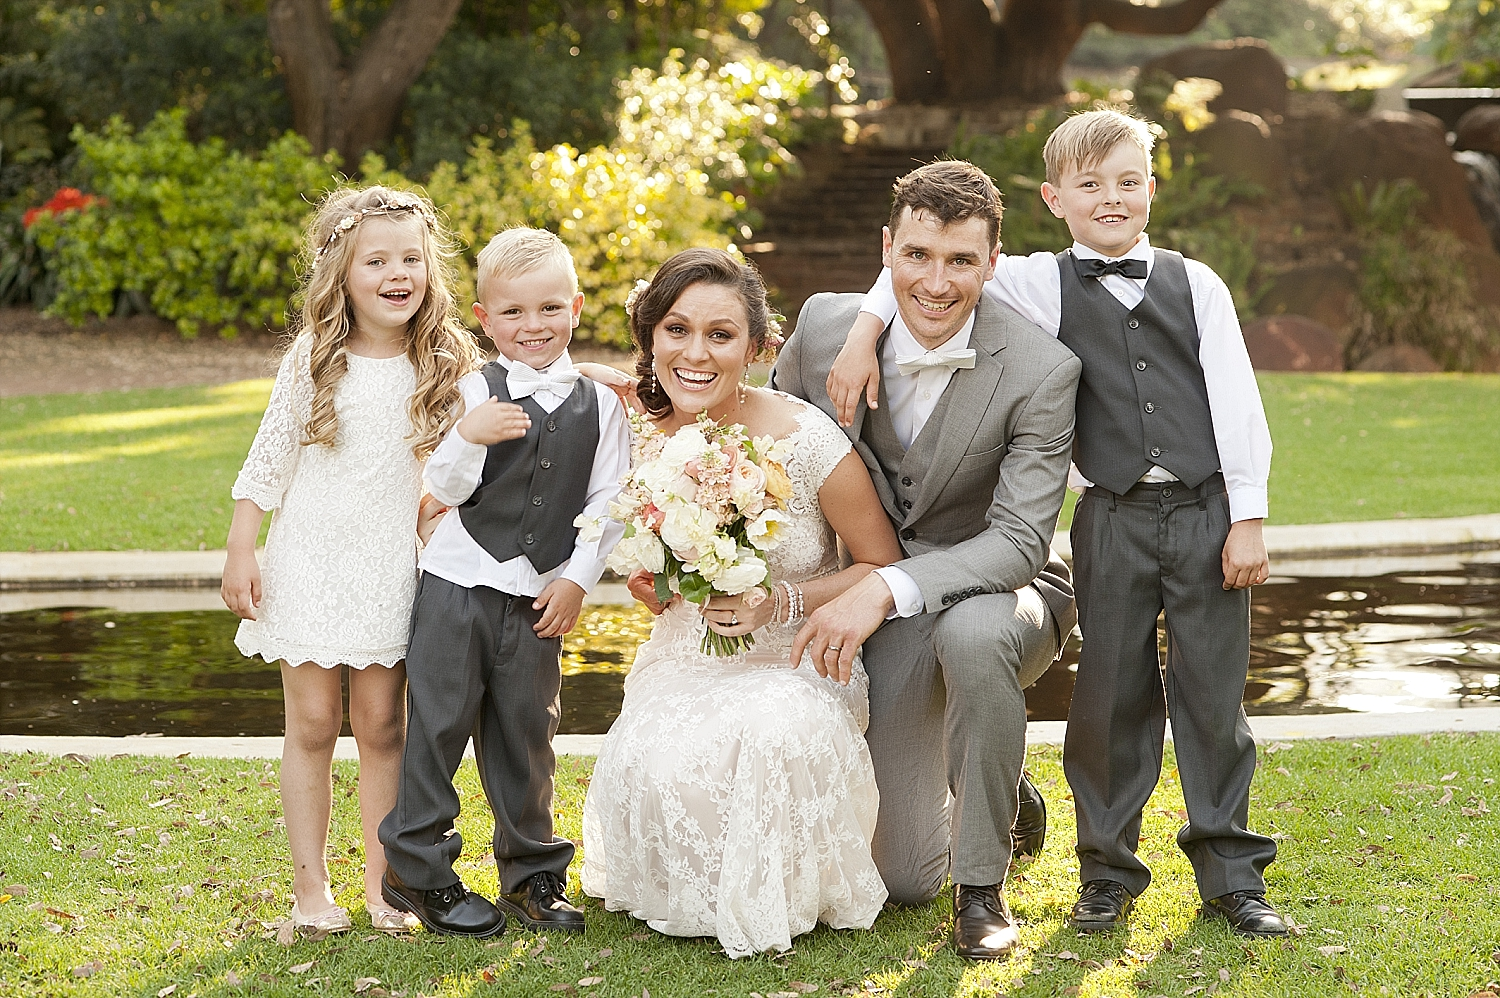 67 relaxed wedding photography perth 080.jpg